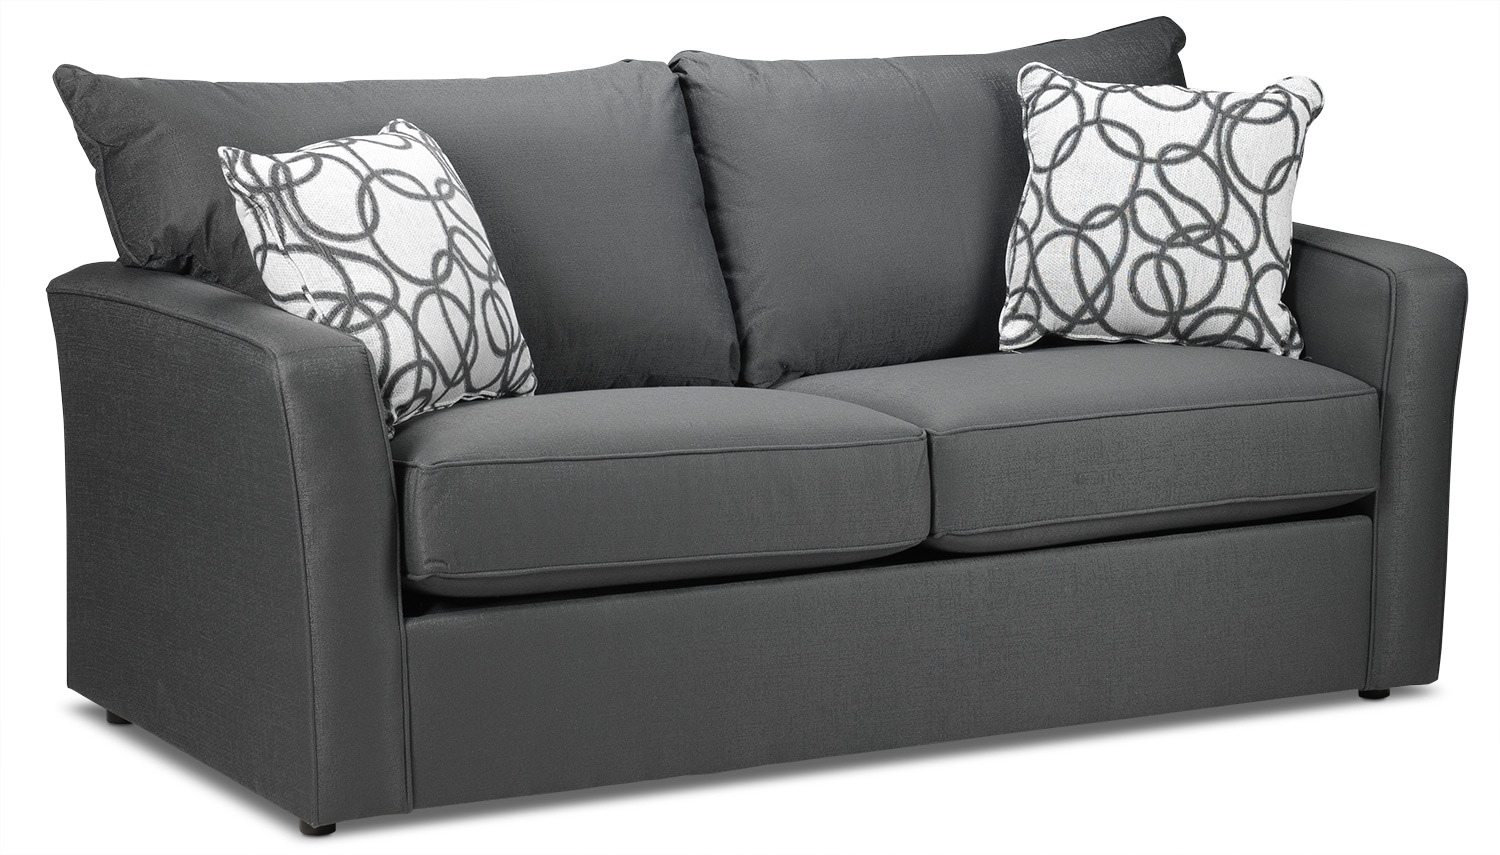 Sonah full innerspring sofabed grey leon39s for Sofa bed measurements